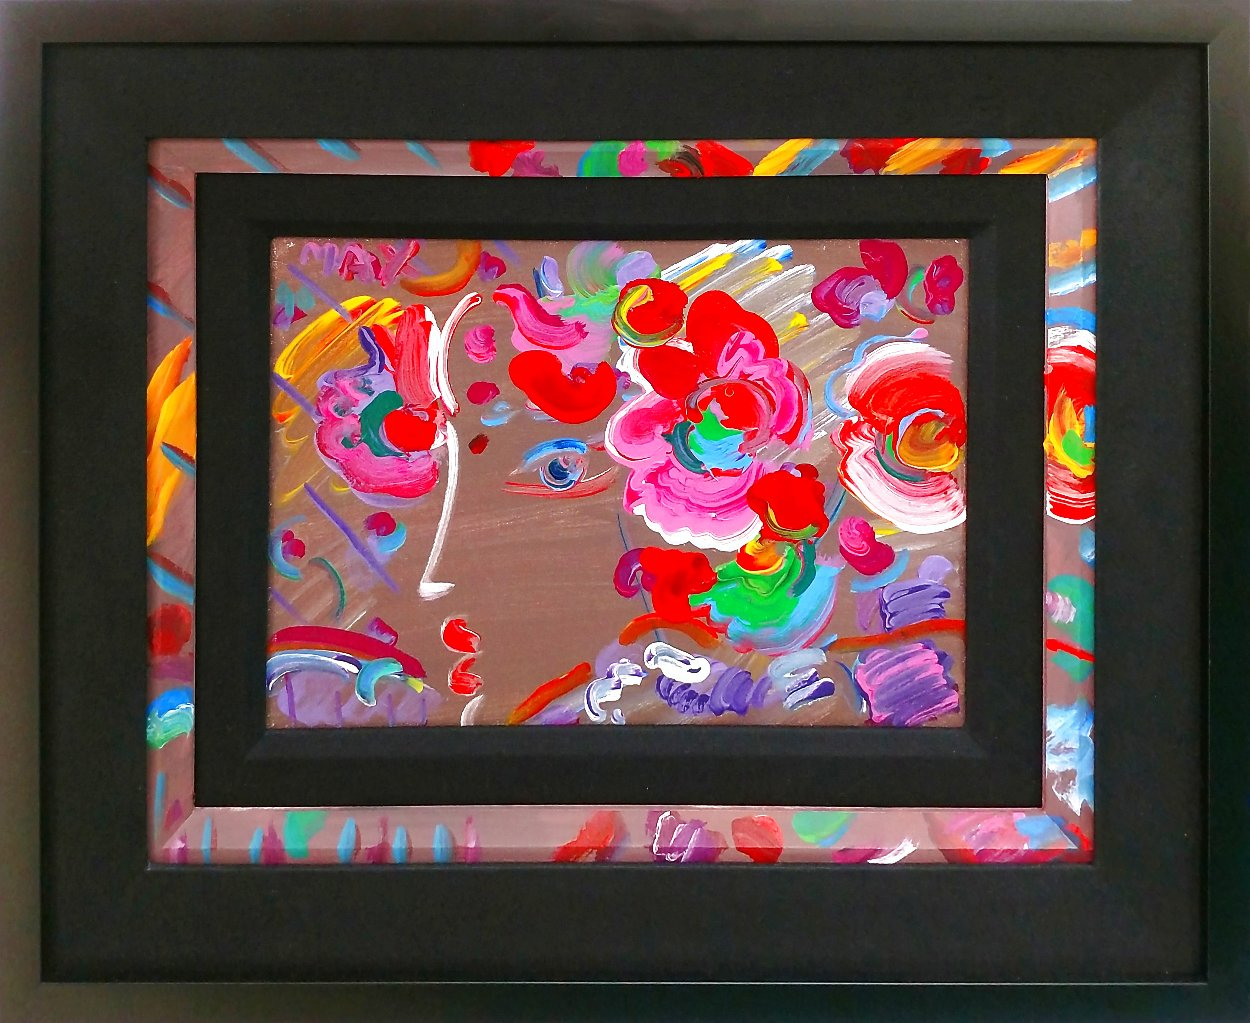 Profile With Flowers 1990 14x10 Original Painting by Peter Max